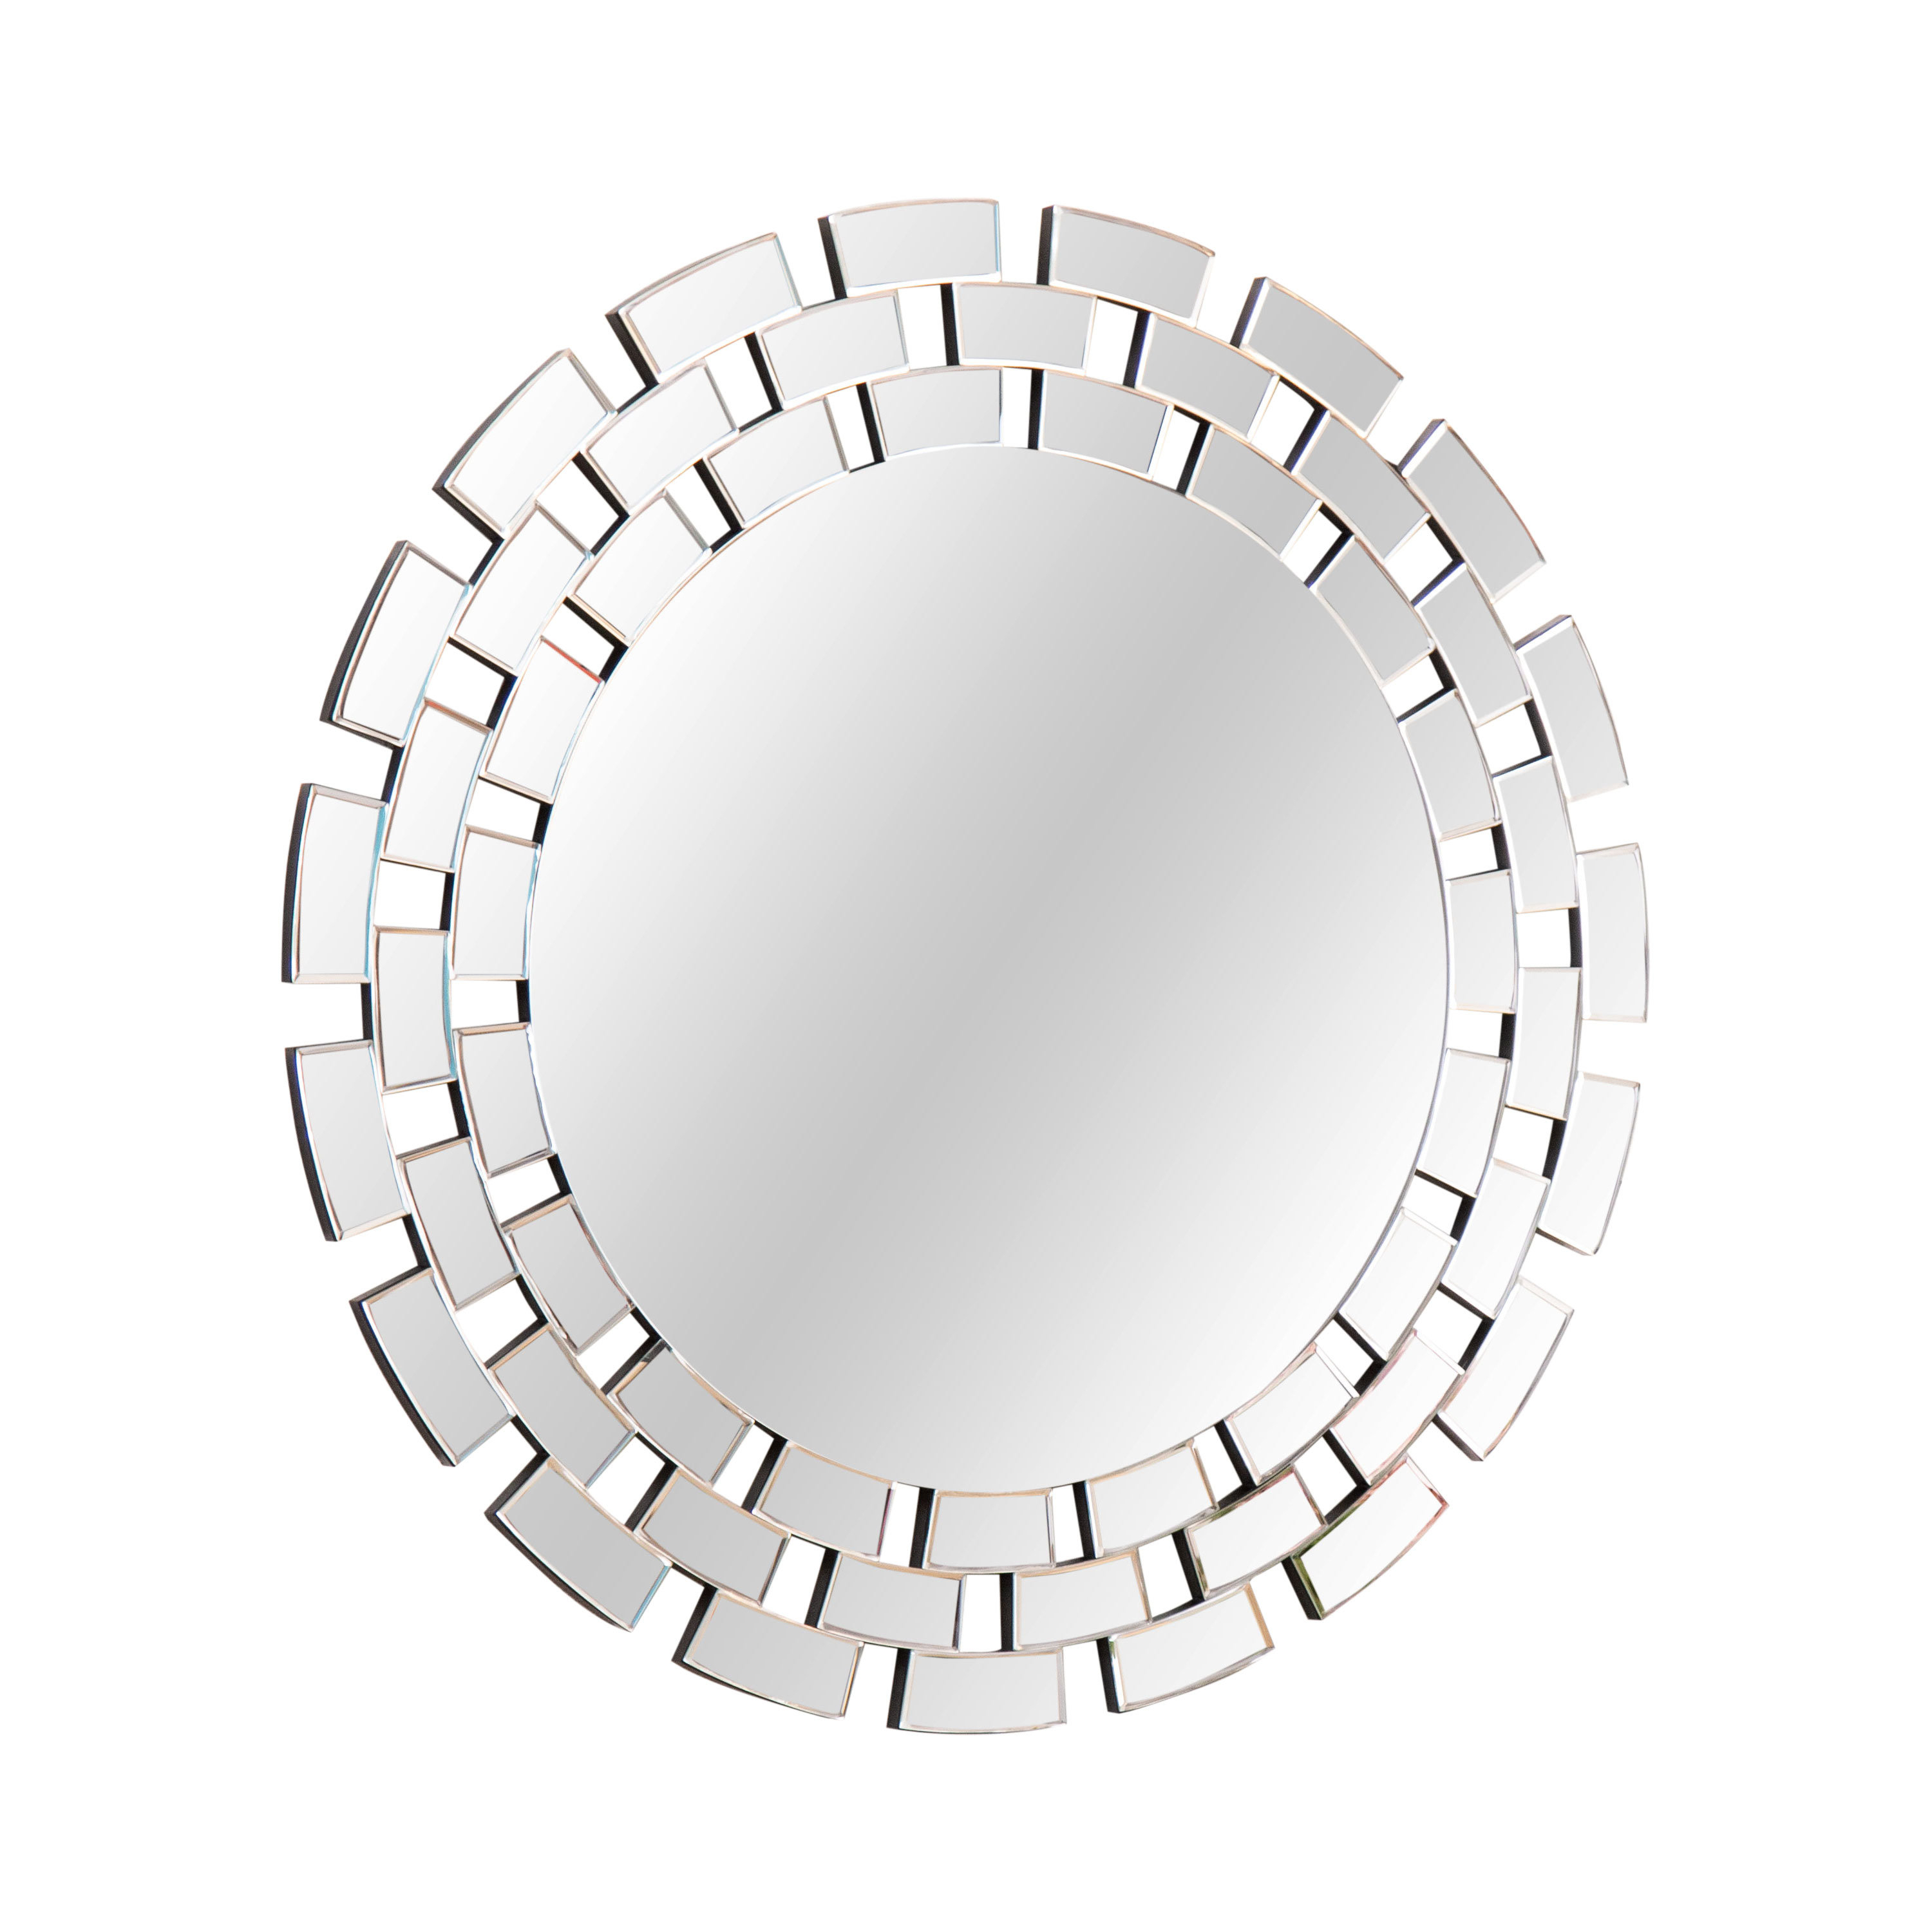 Round Glass Wall Accent Mirror In Tata Openwork Round Wall Mirrors (Image 9 of 20)